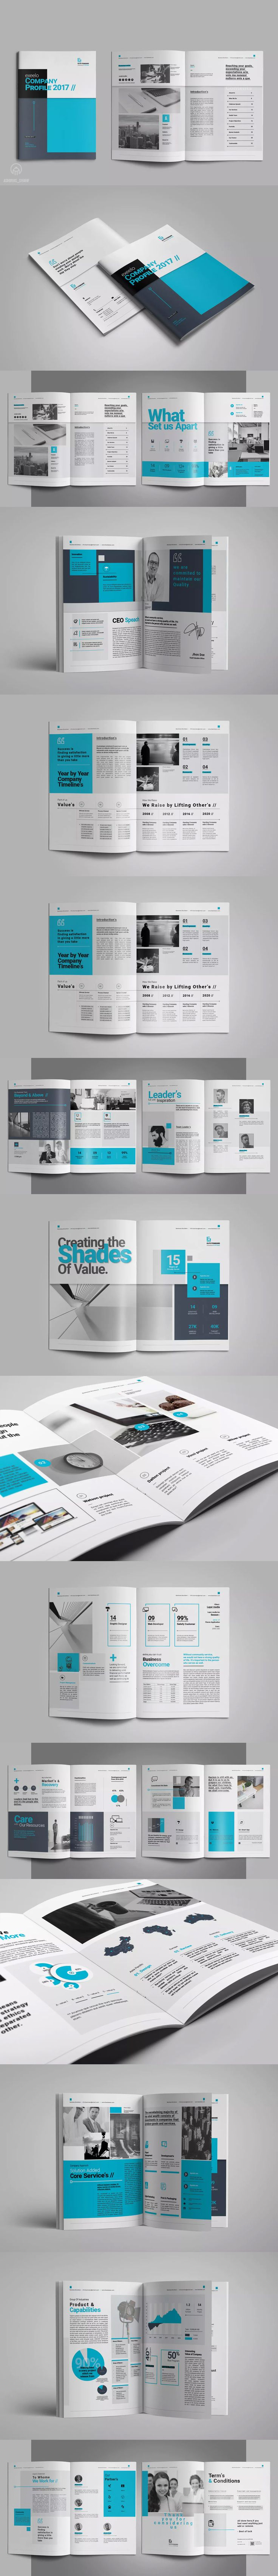 Company Business Profile InDesign INDD - A4 and US Letter Size